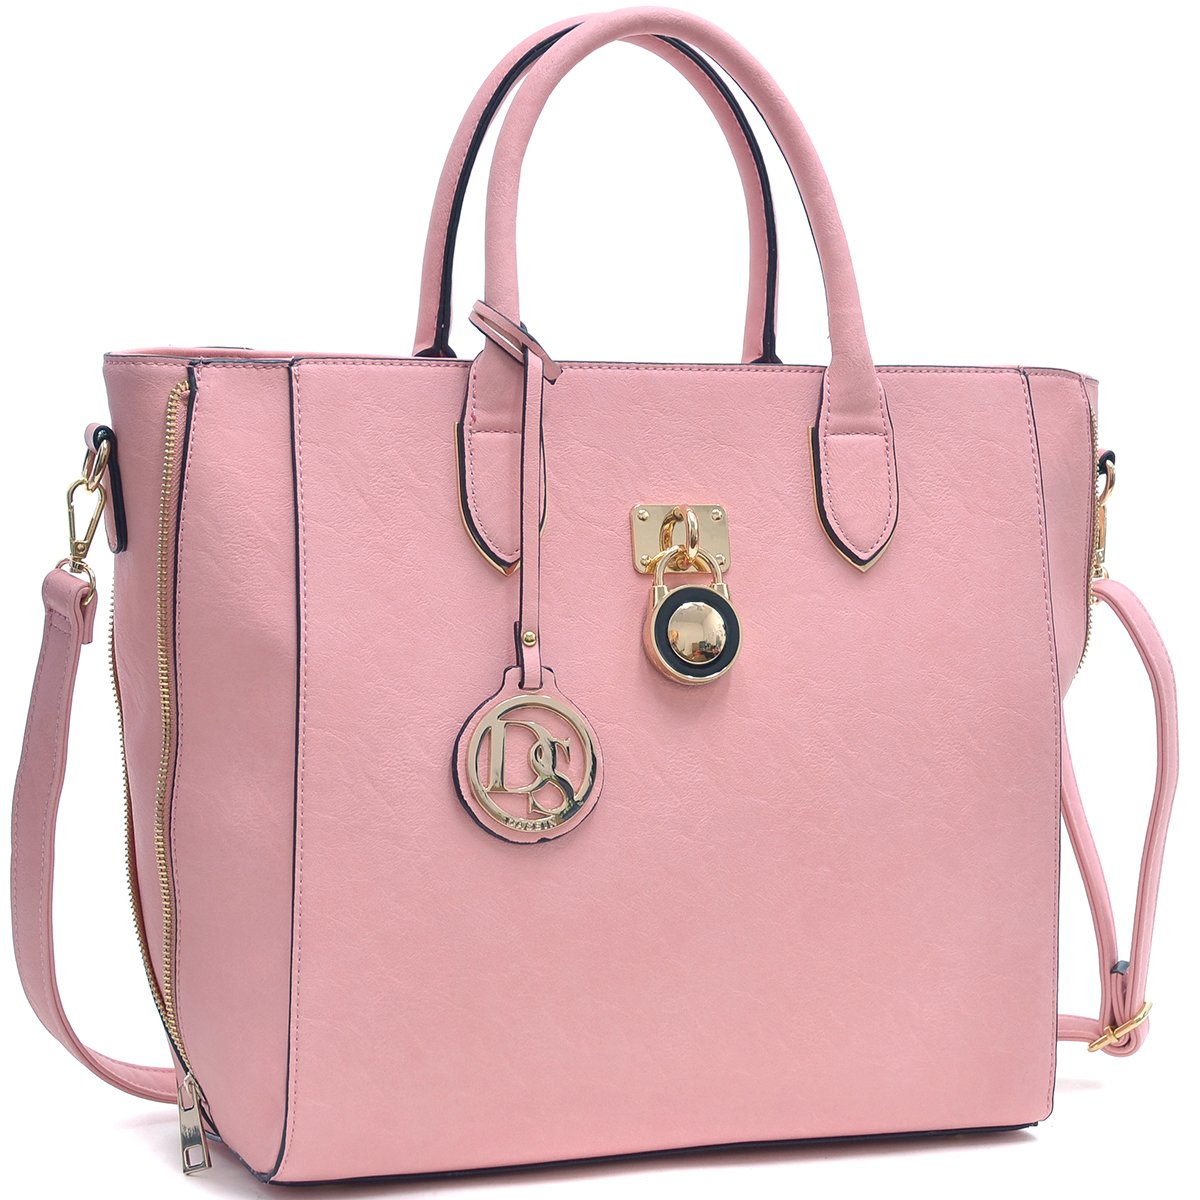 Solid-Color Emblem Tote Handbag-Handbags & Purses-Dasein Bags